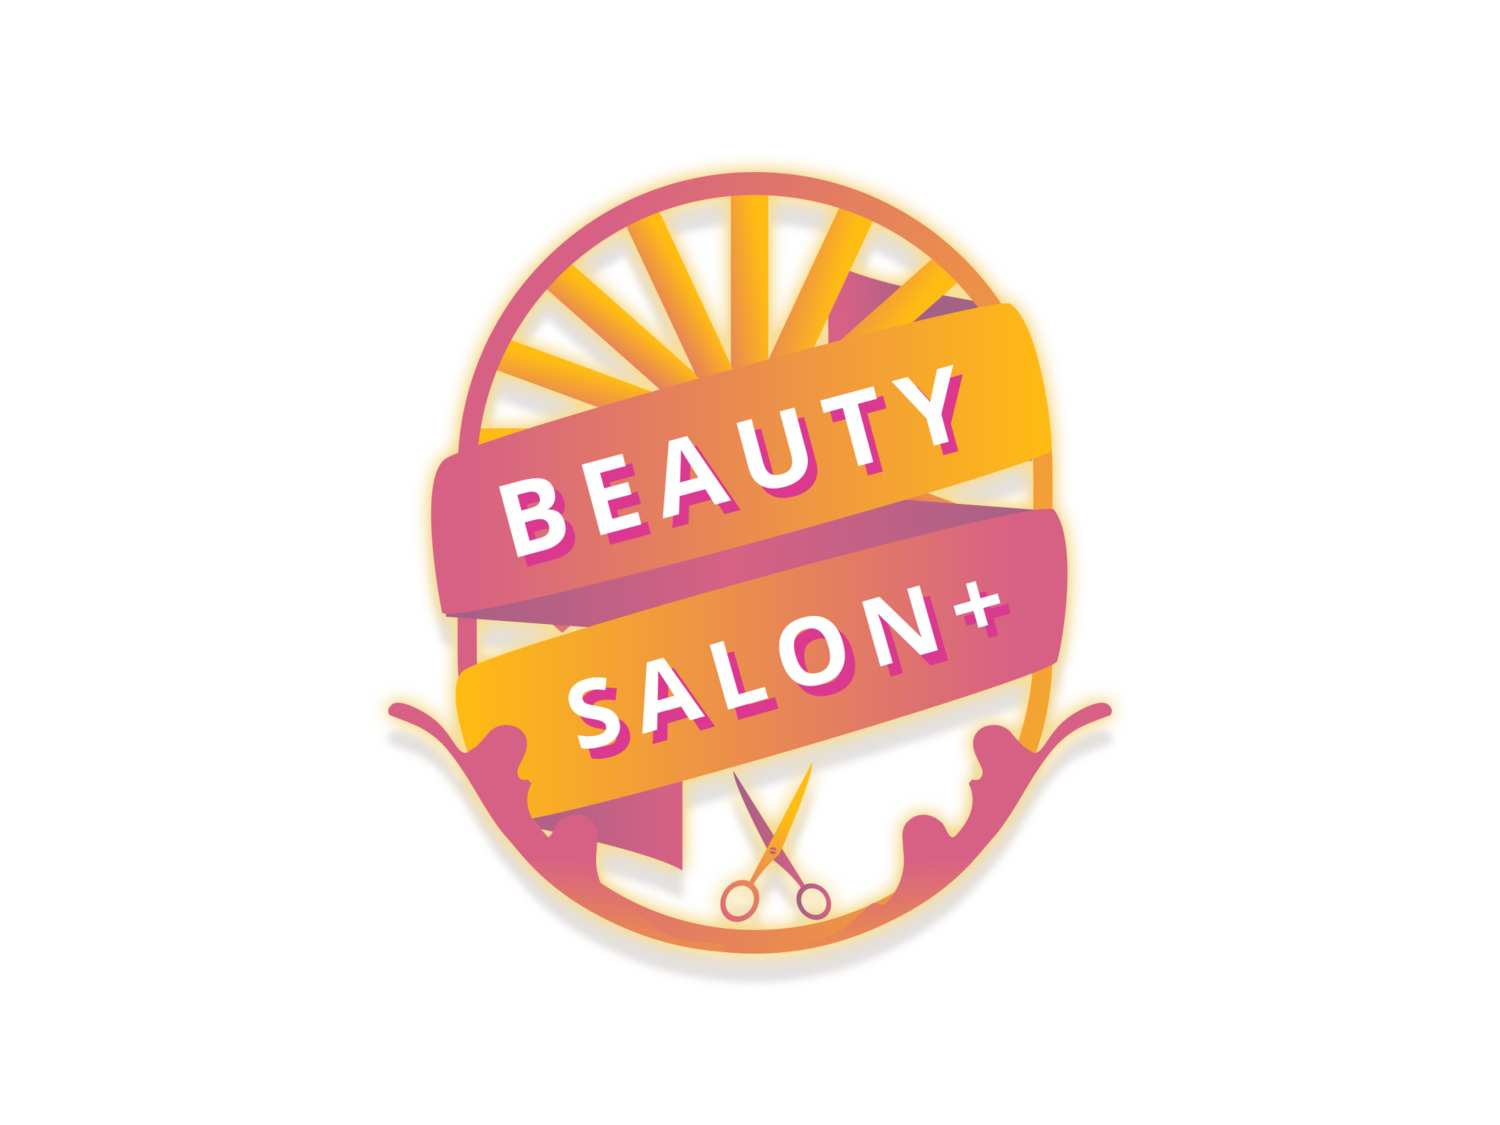 Beauty Salon+